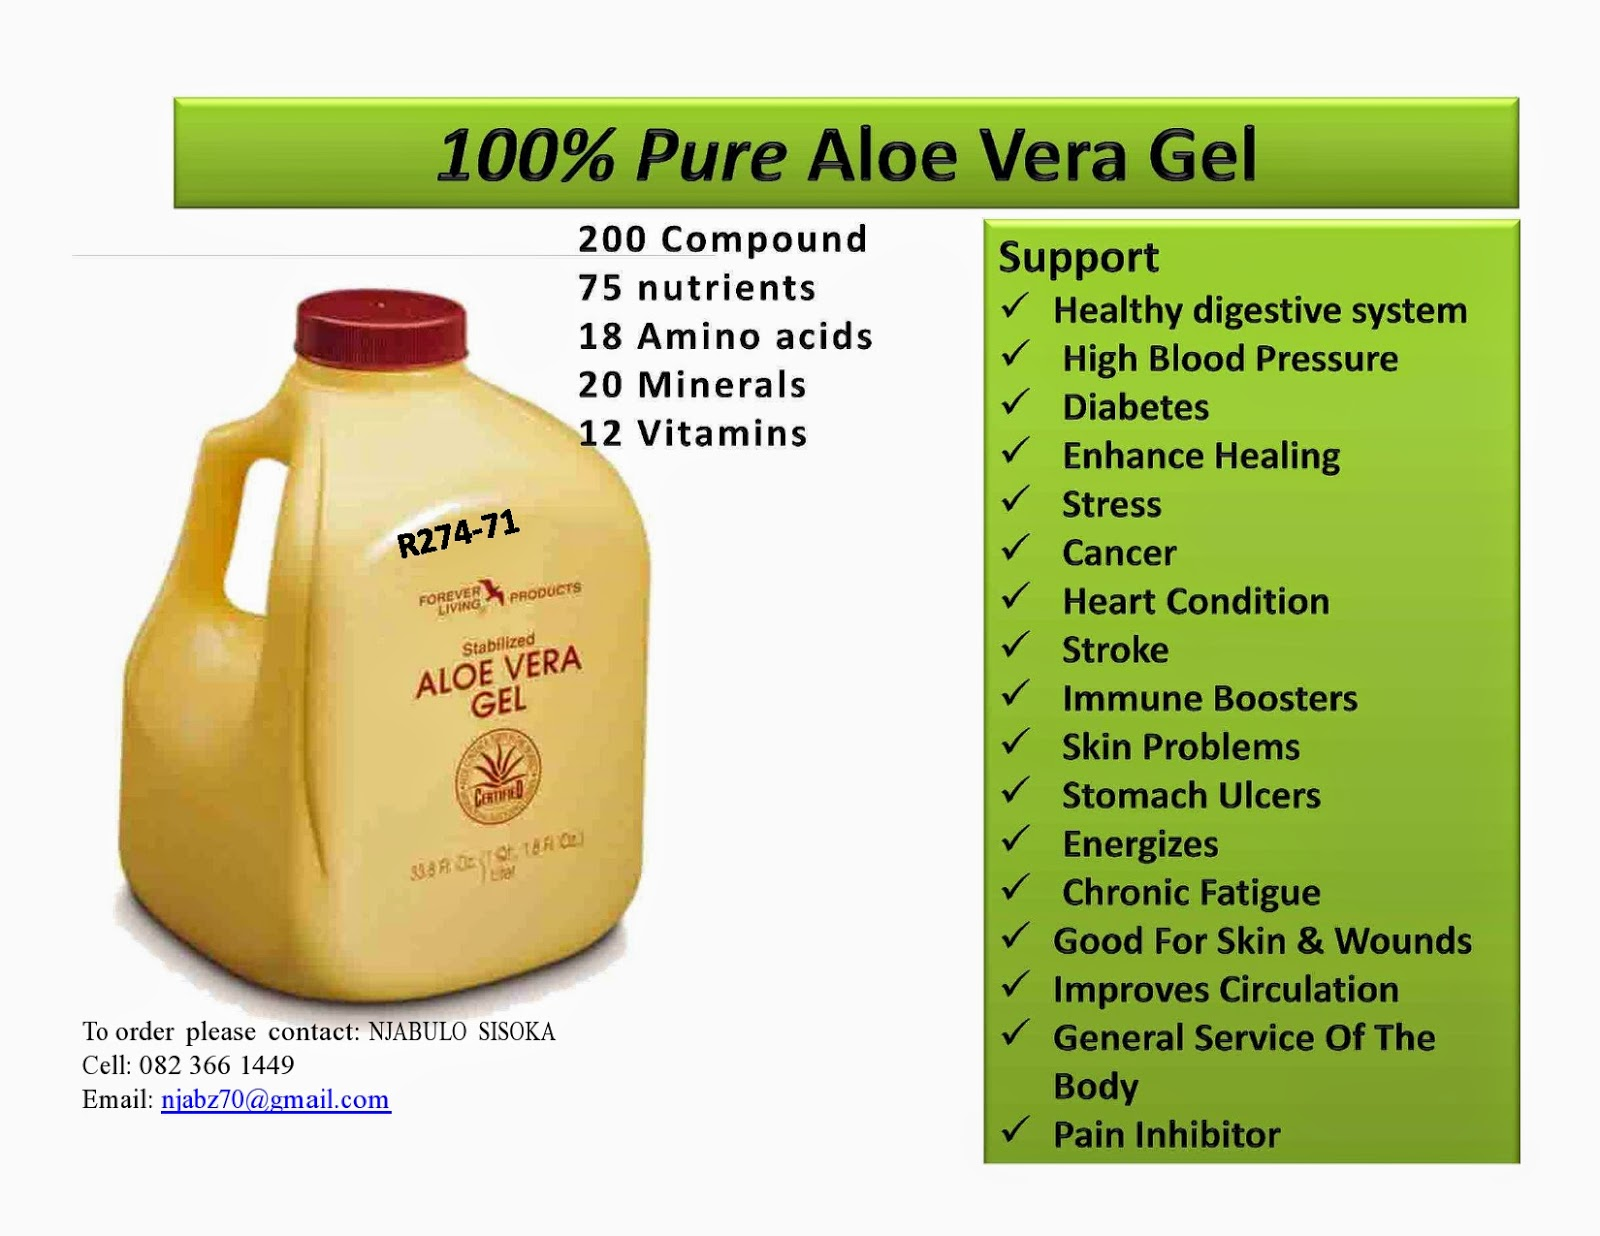 Forever Living Products Business presentation - PowerPoint PPT Presentation